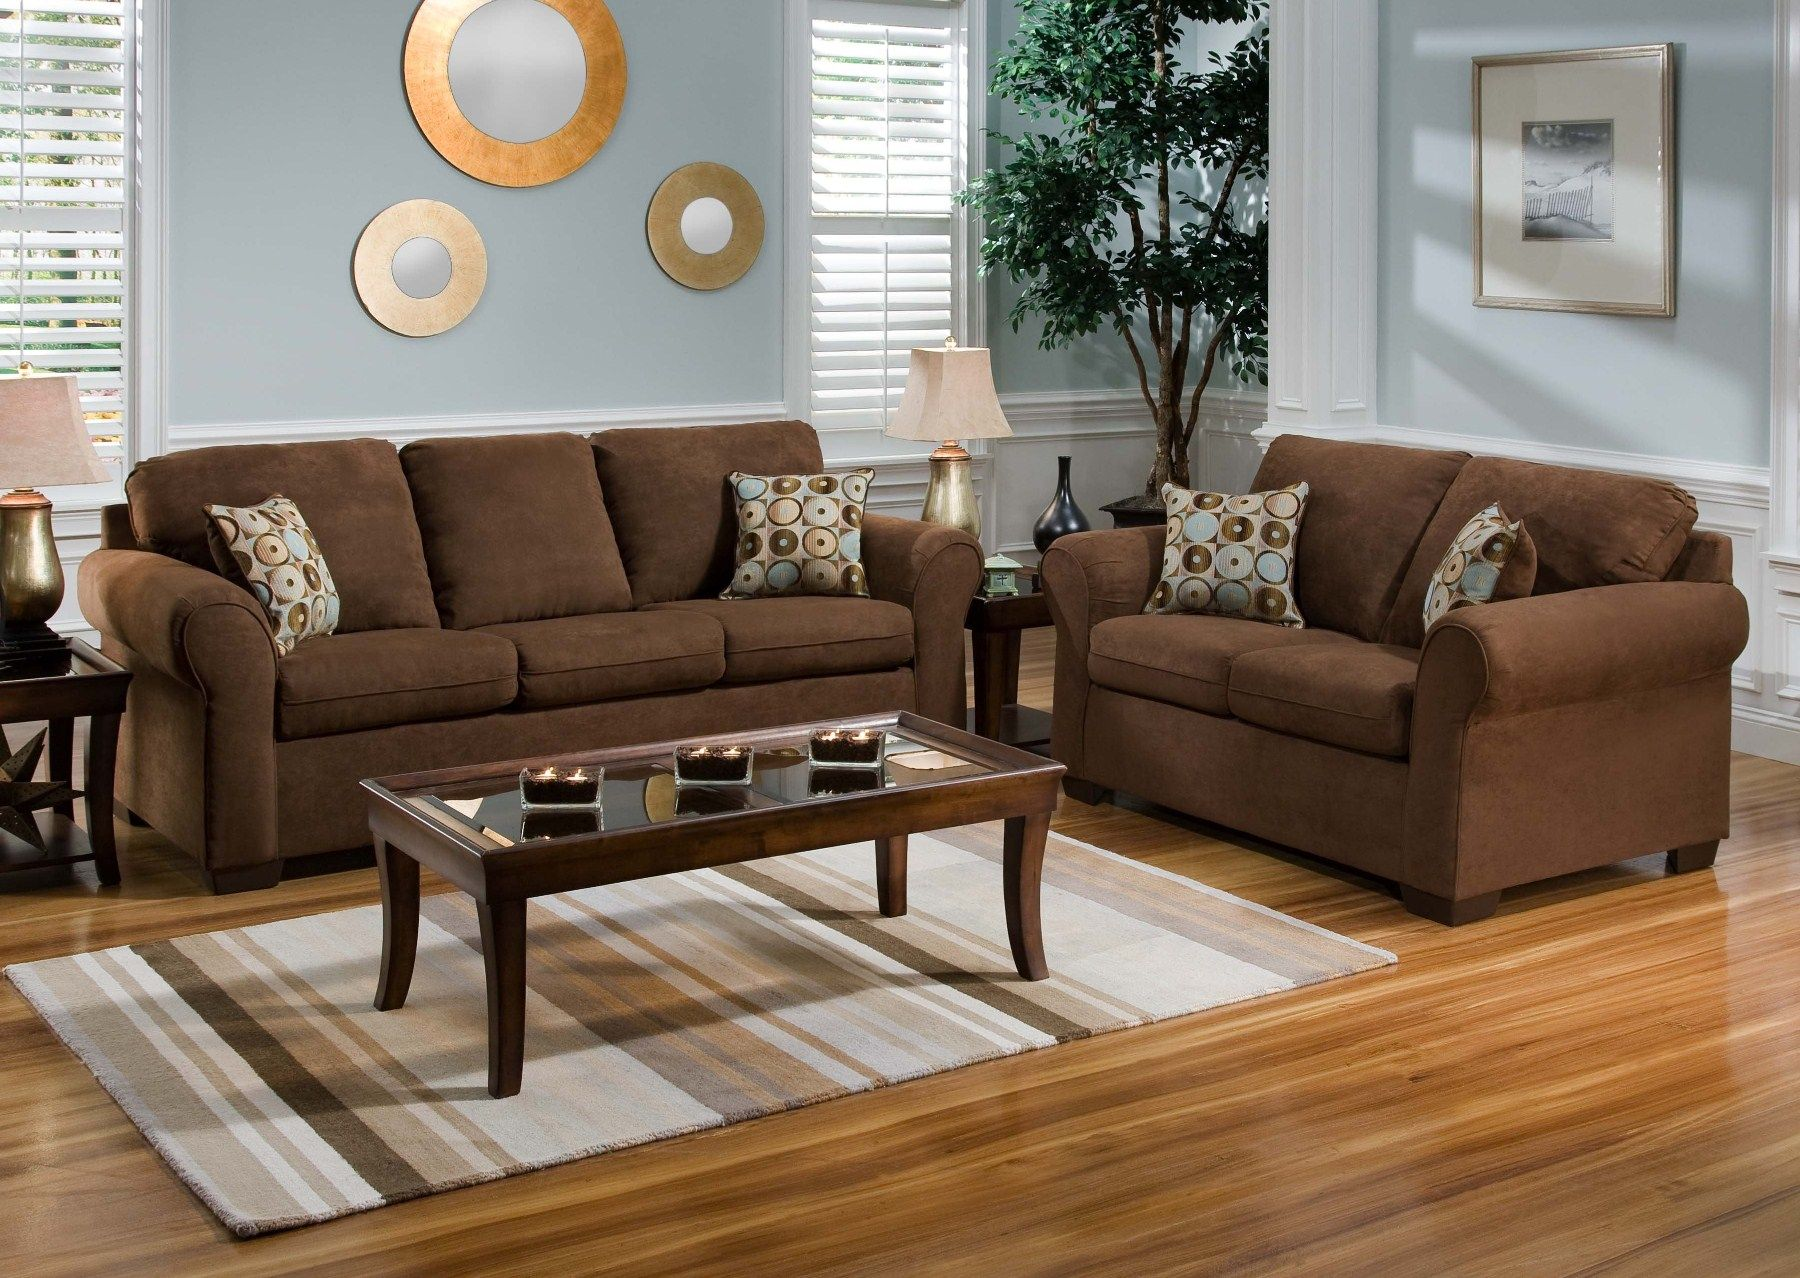 Living Room Couch Living Room Warm Living Room Color Schemes With Chocolate